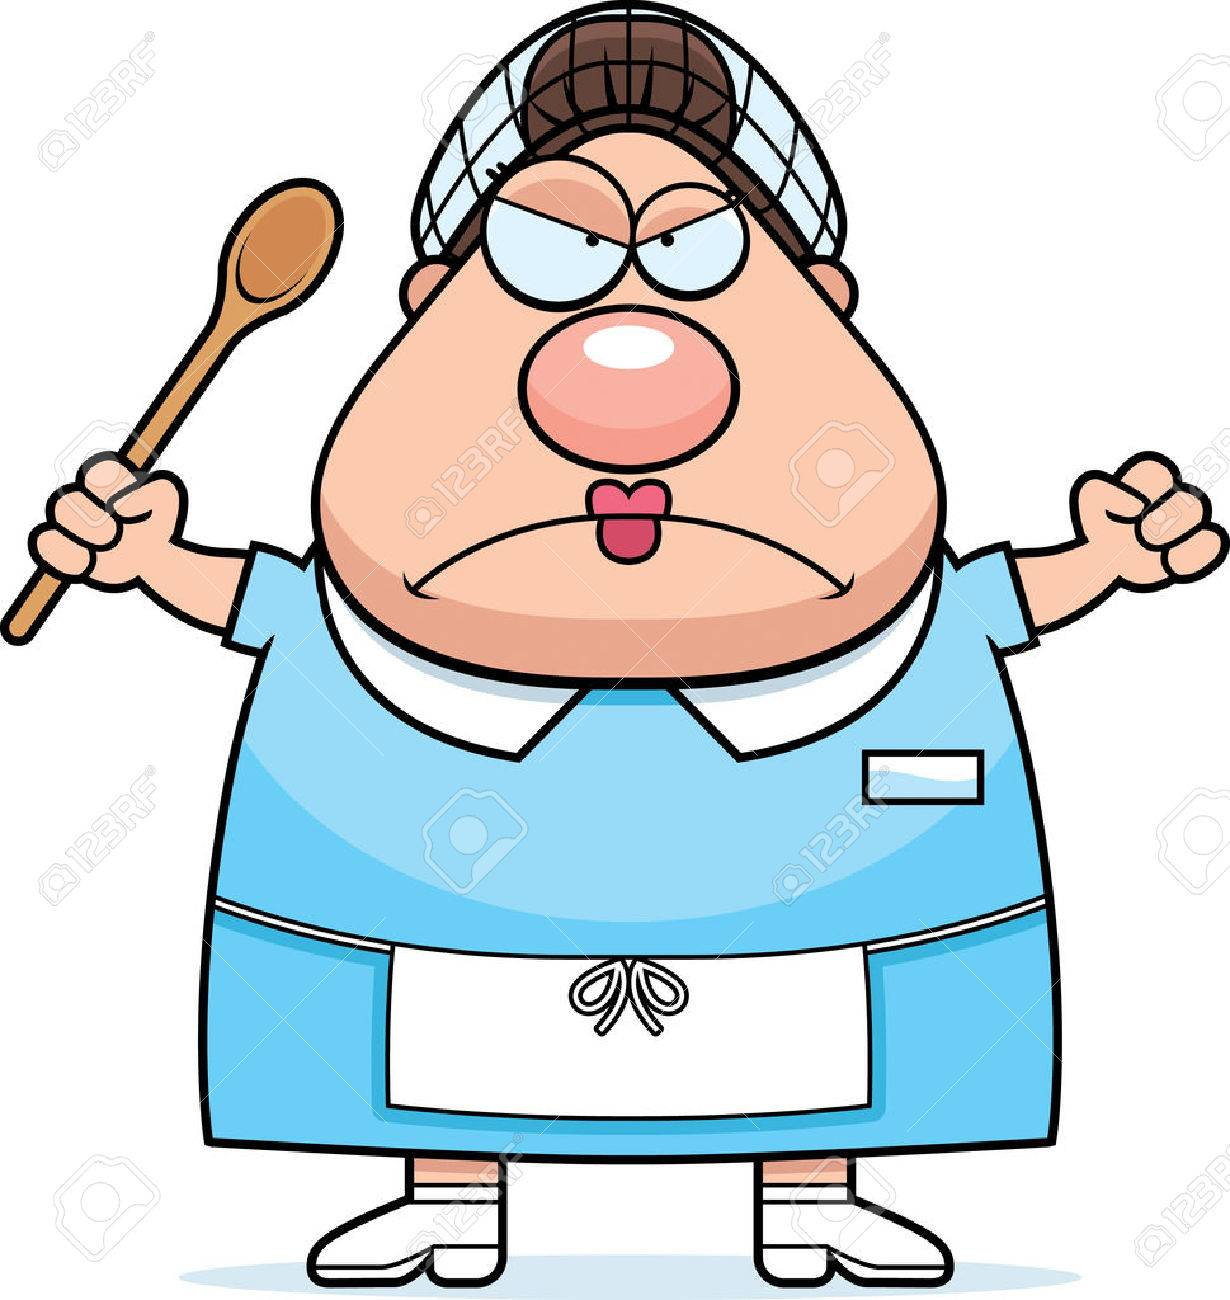 A cartoon illustration of a lunch lady looking angry..